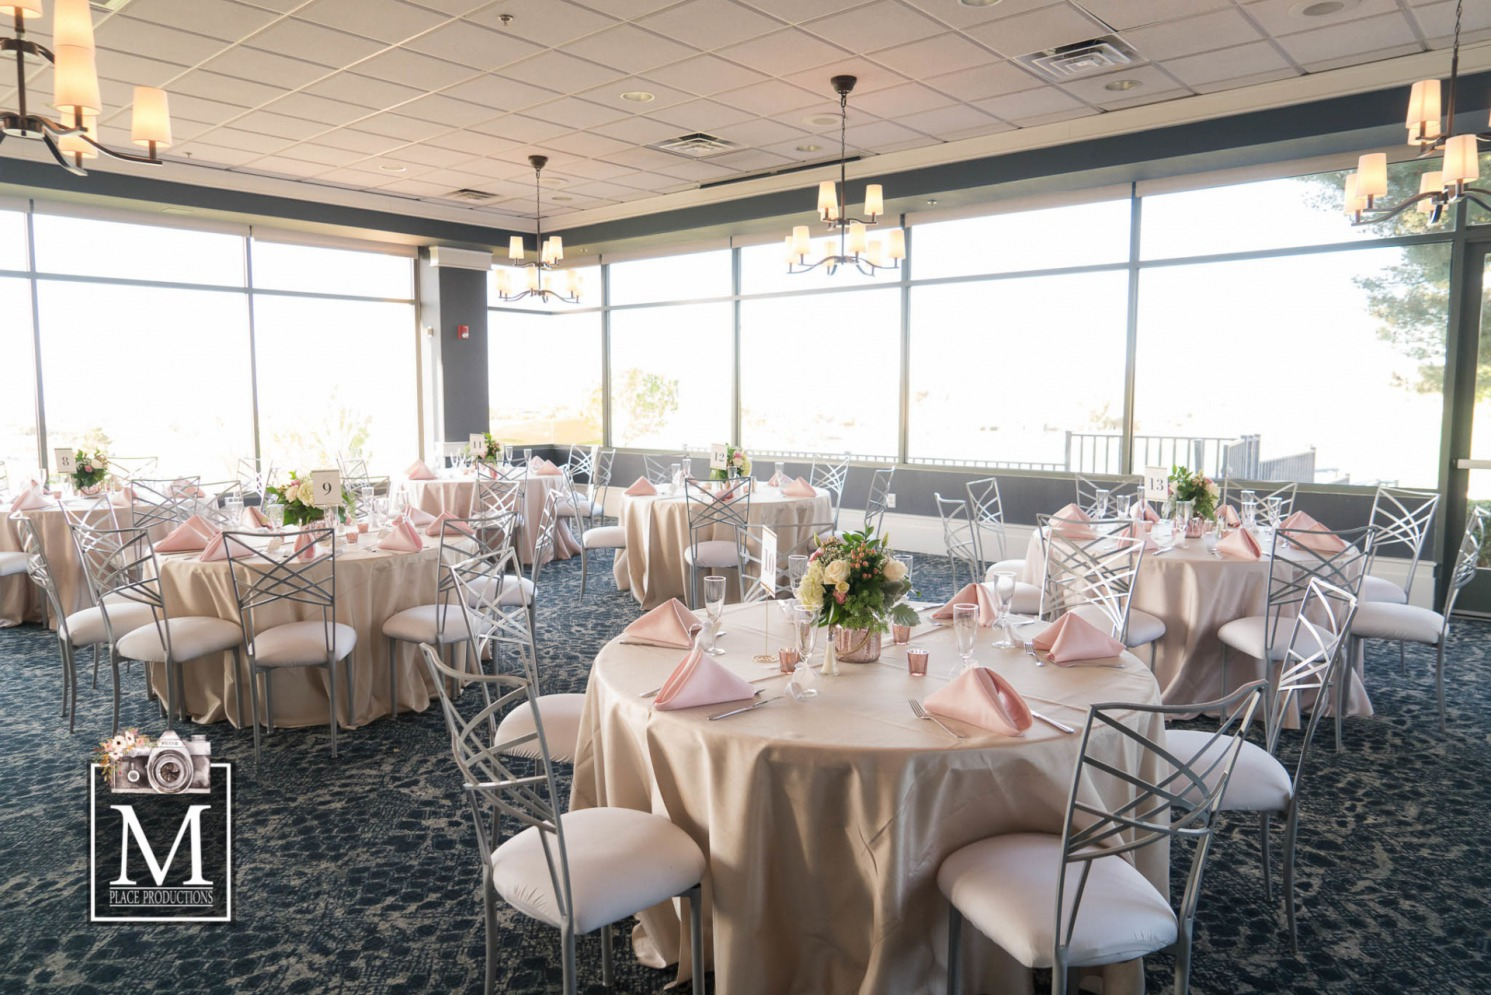 Real Las Vegas Wedding captured by M Place Productions on the sprawling grounds of Thew Revere Golf Club.